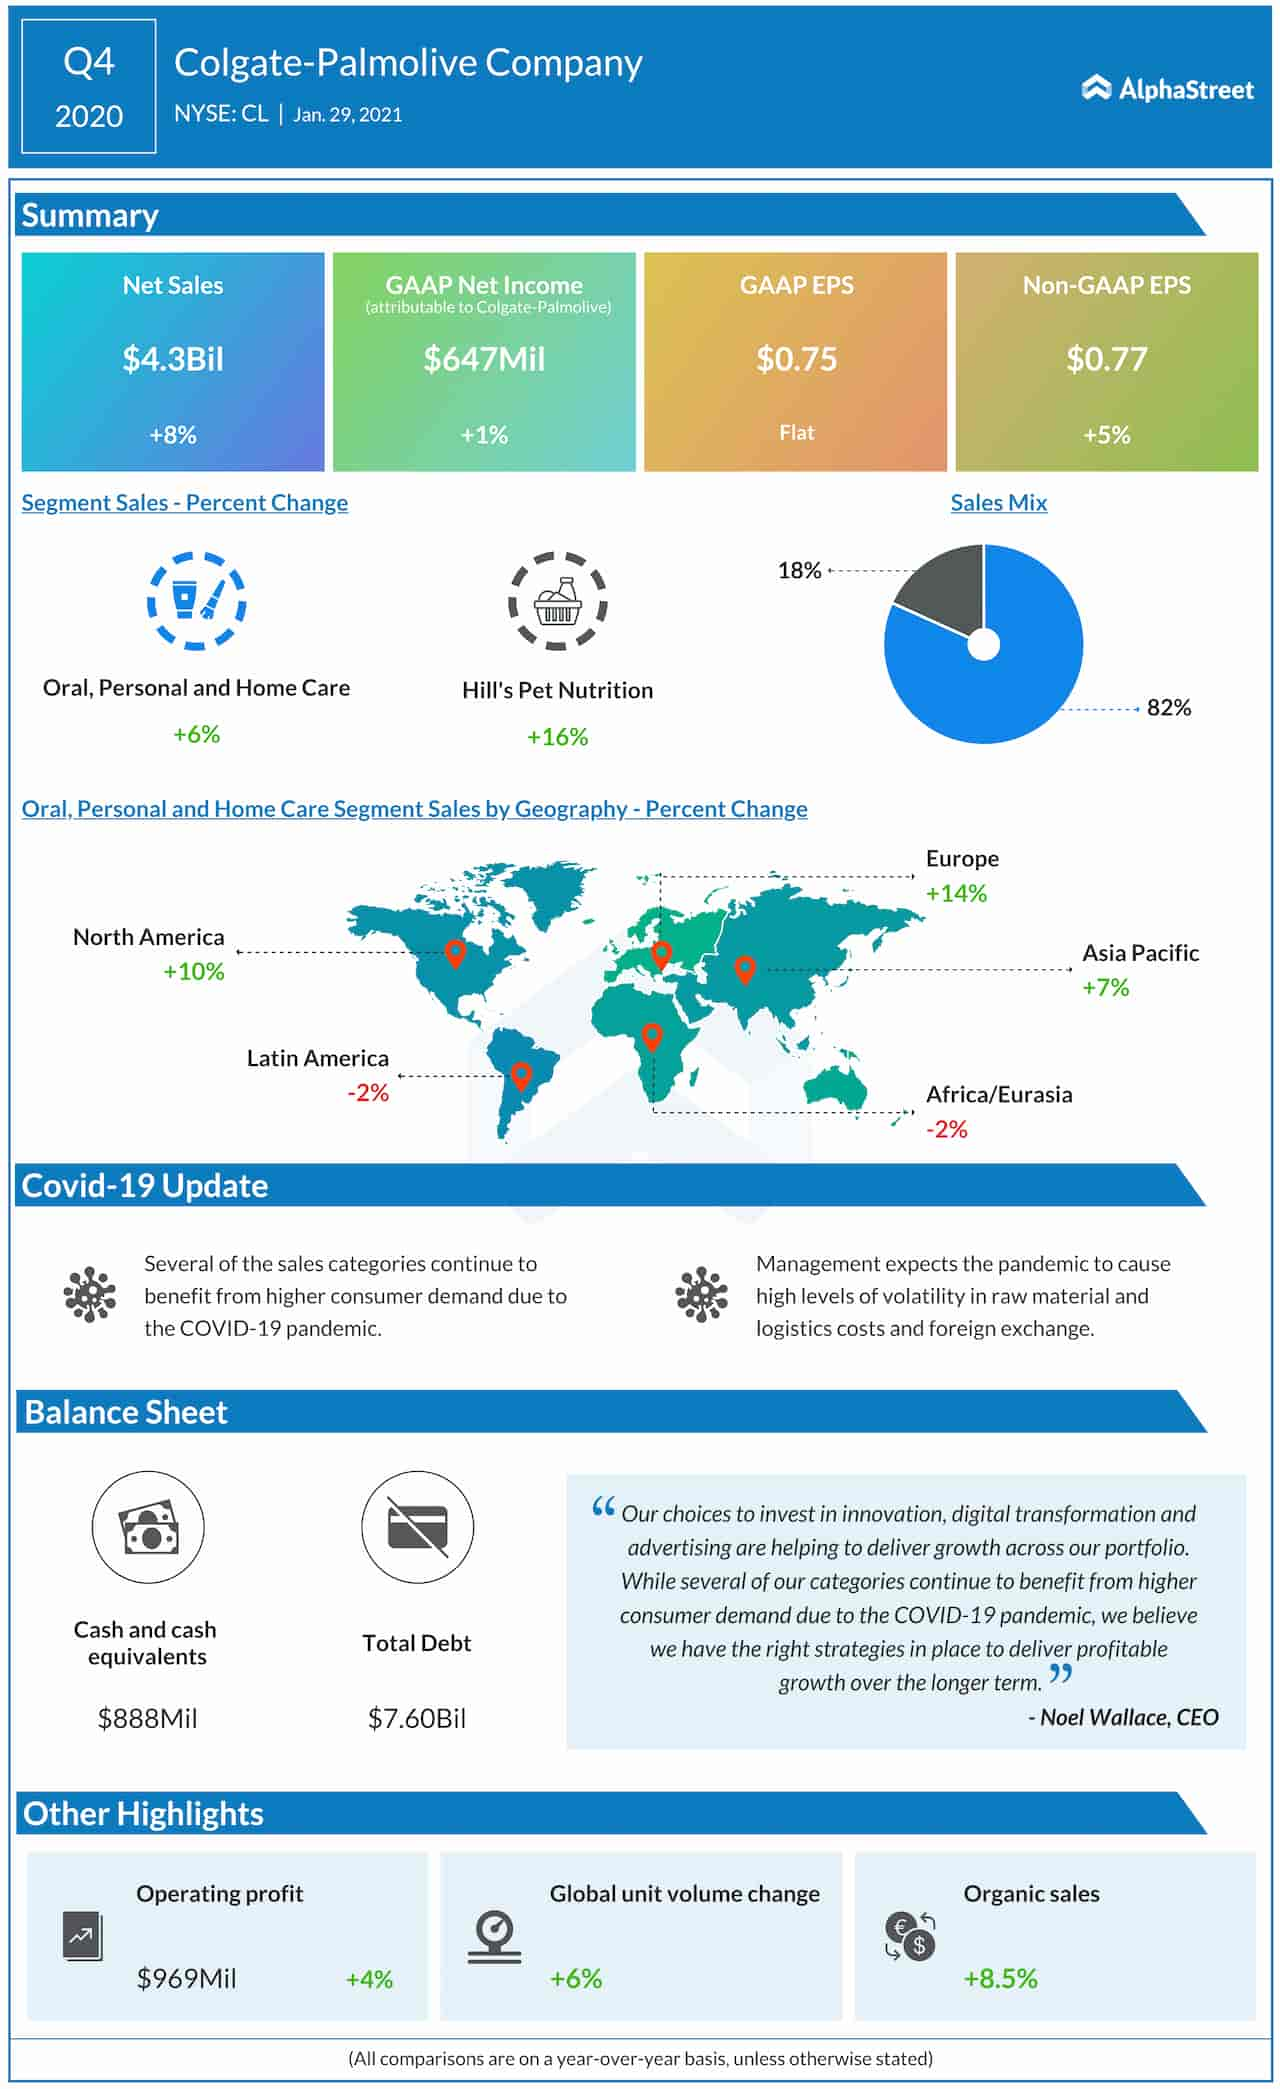 Colgate-Palmolive Q4 2020 Earnings Infographic